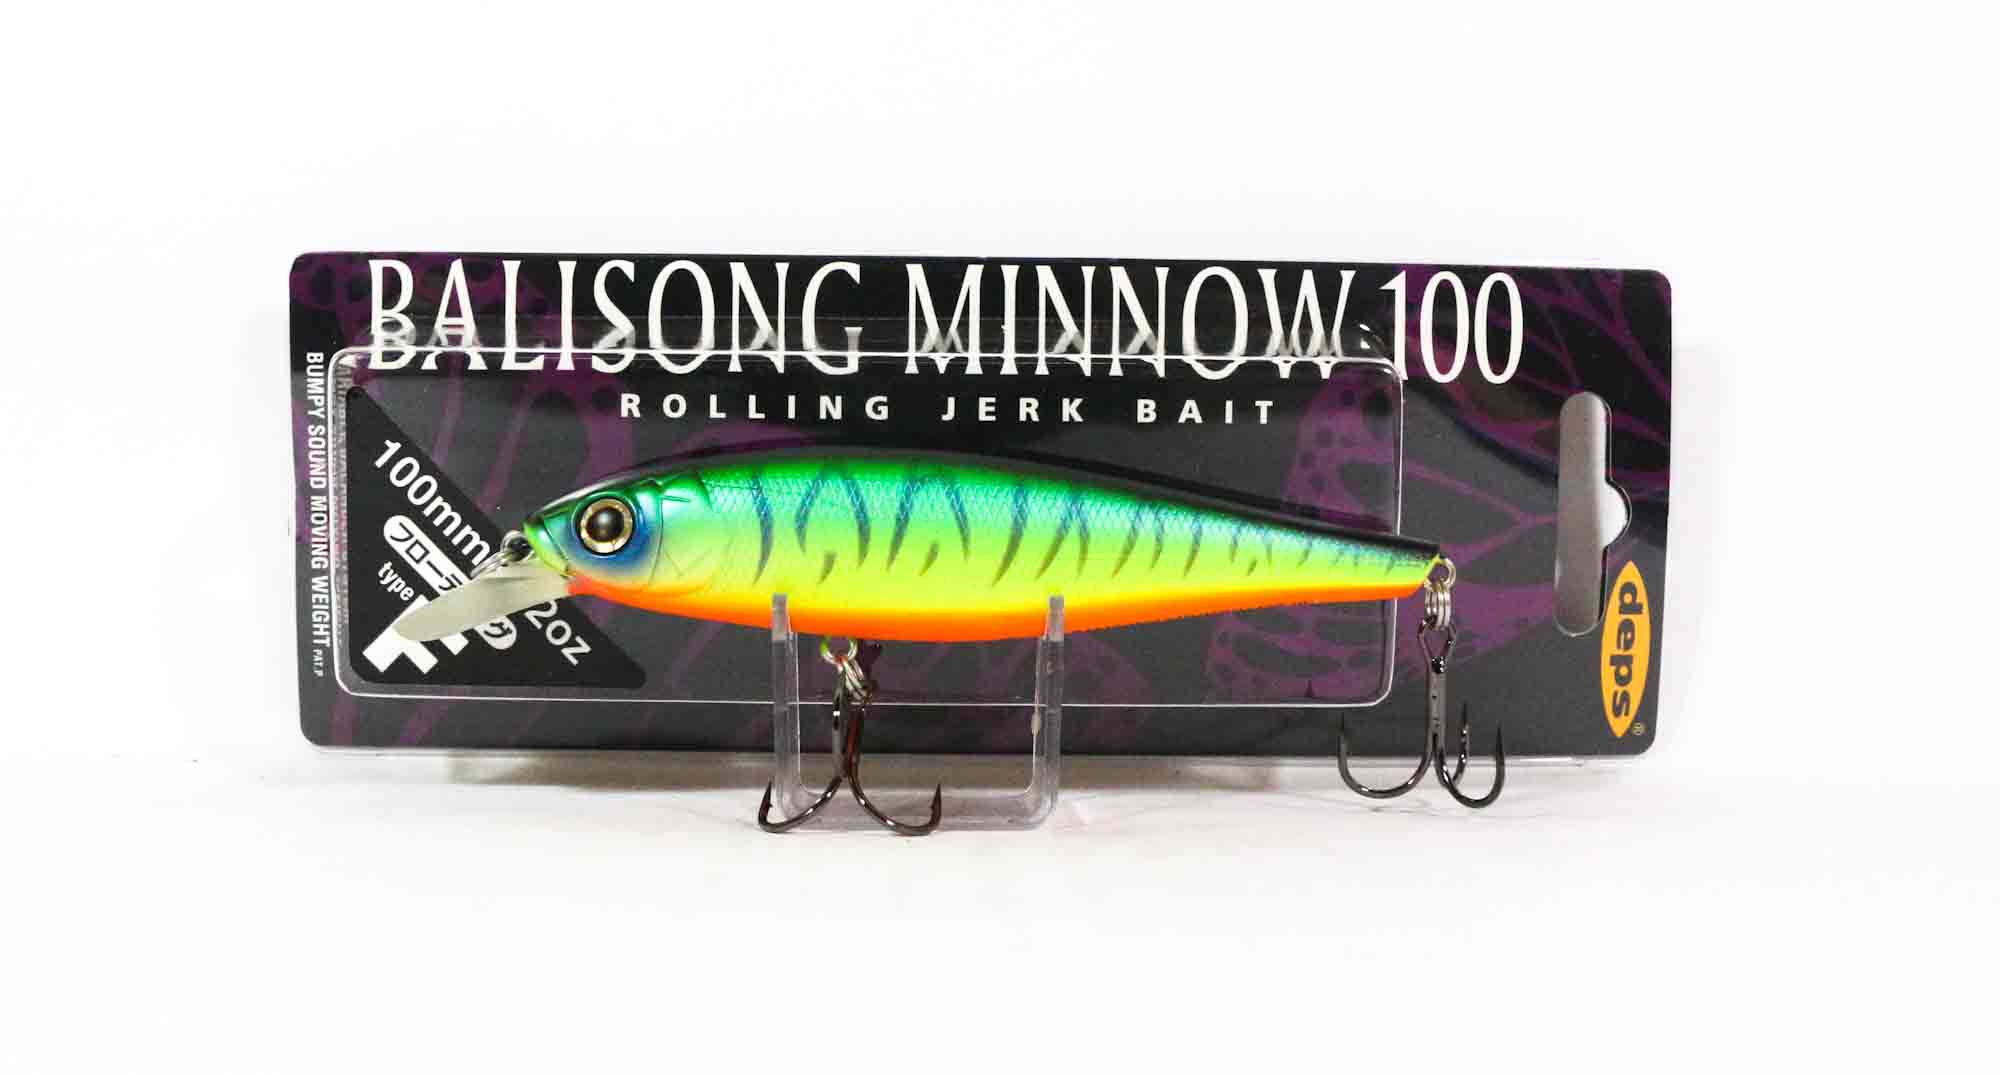 Deps Balisong Minnow 100F 1/2 oz Floating Lure 05 (2053)